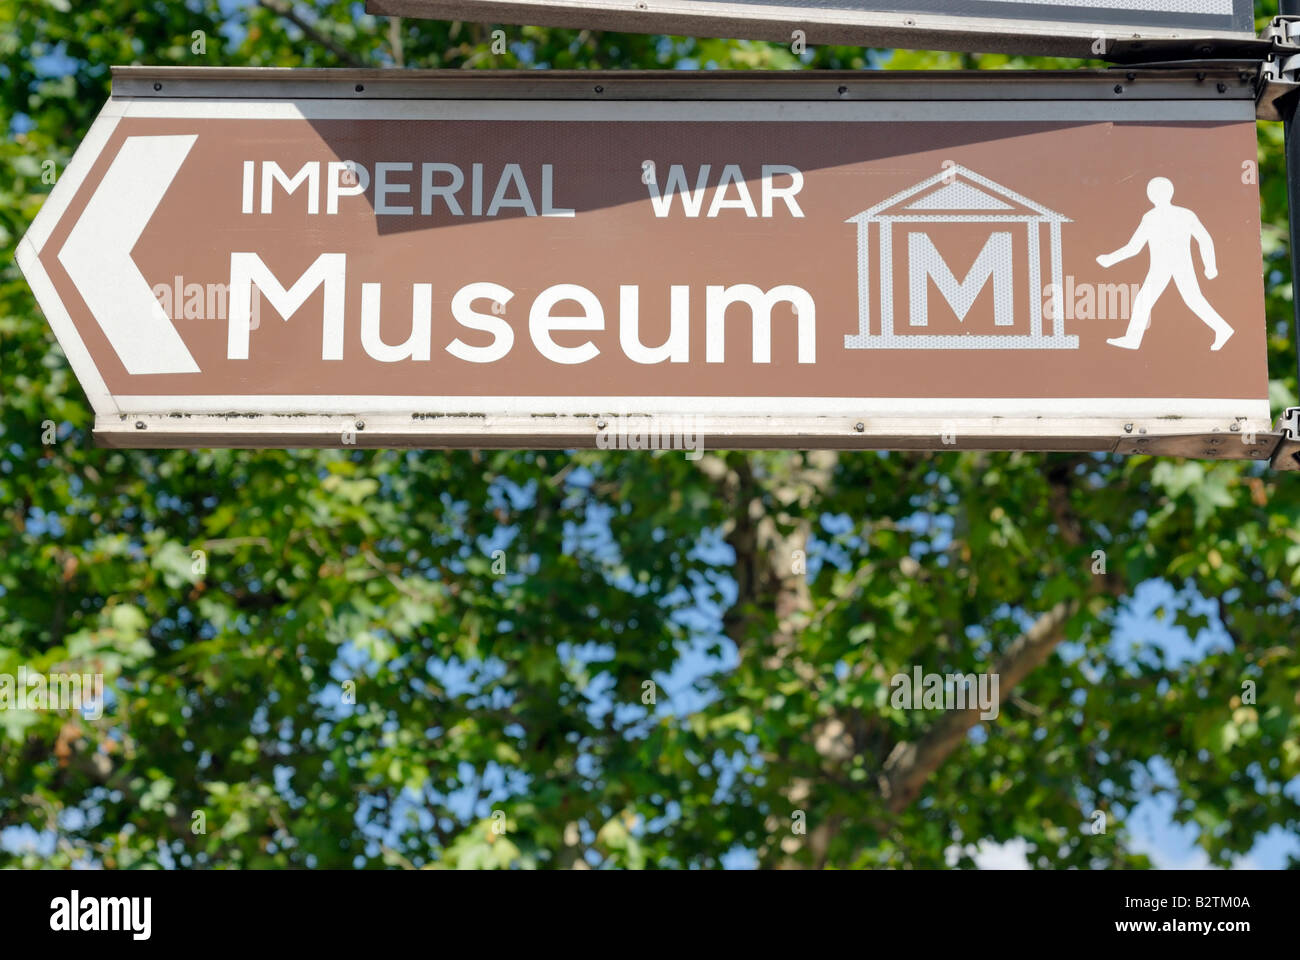 Imperial War Museum sign - Stock Image